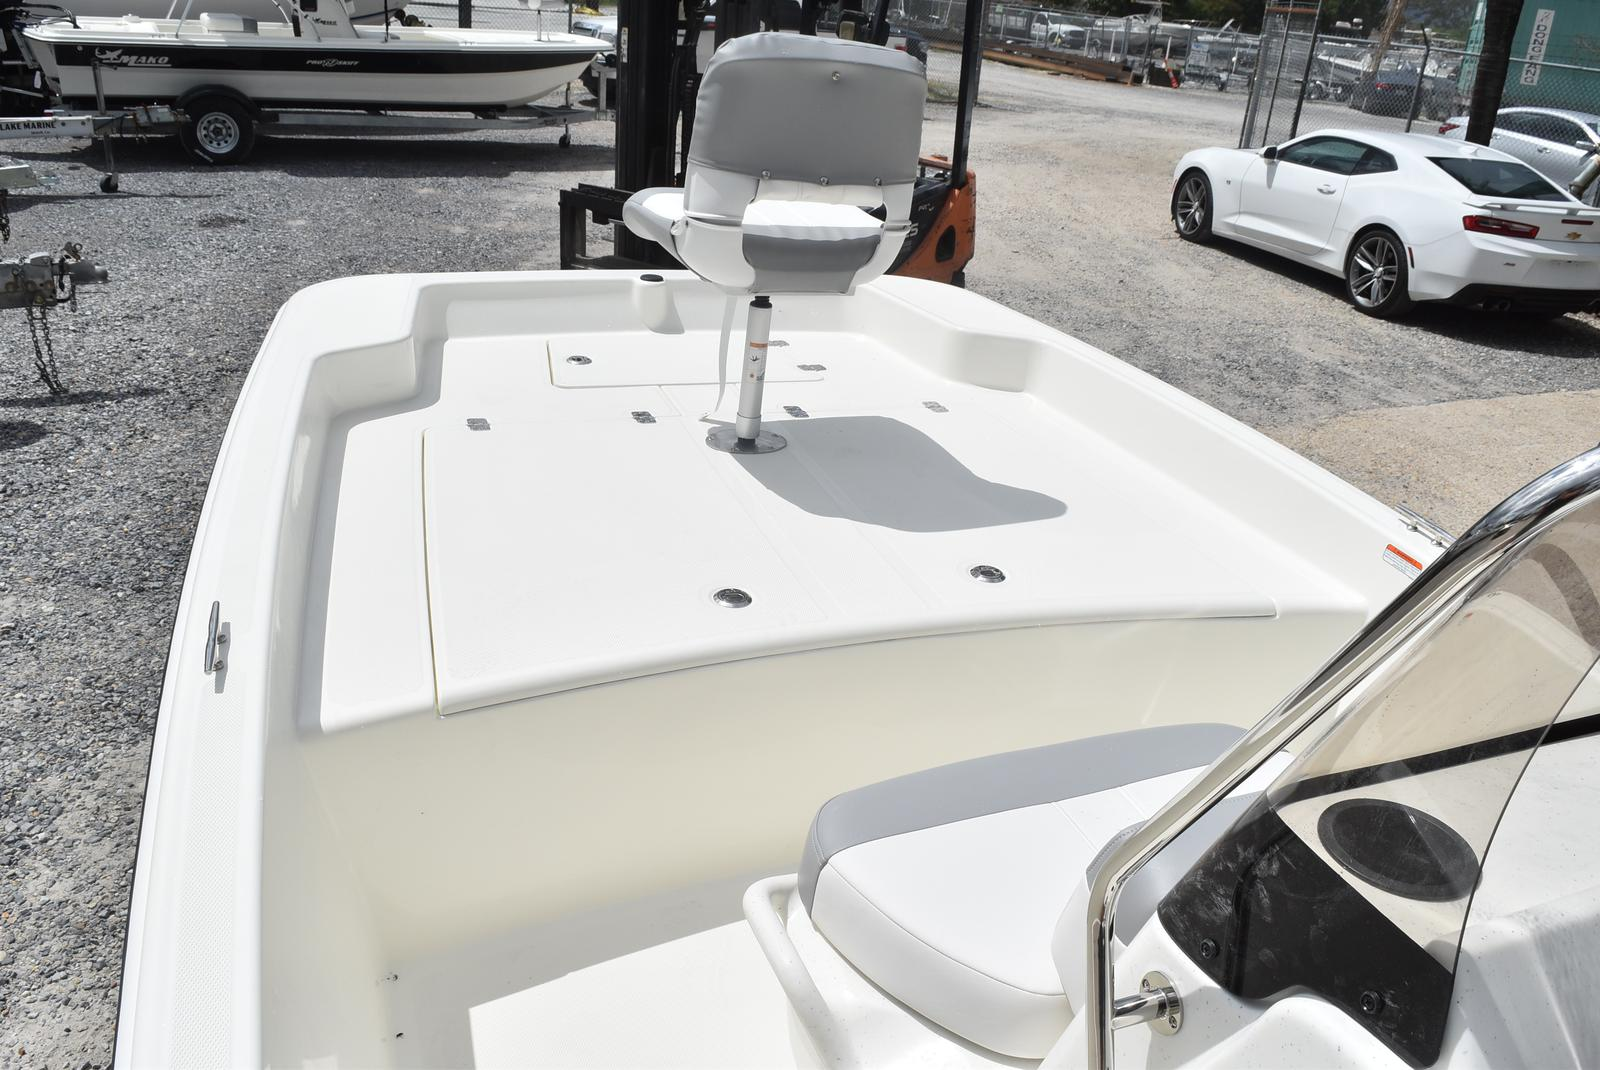 2020 Mako boat for sale, model of the boat is Pro Skiff 17, 75 ELPT & Image # 427 of 702